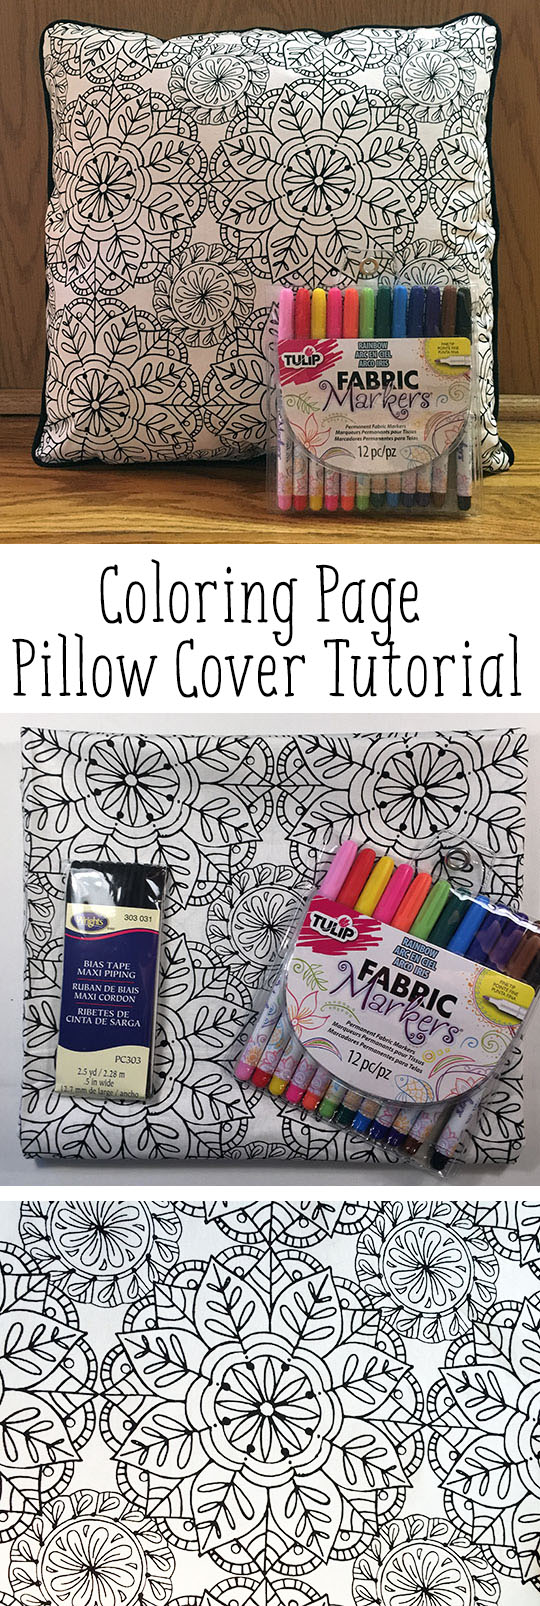 Coloring page pillow cover tutorial | Clever Little Mouse